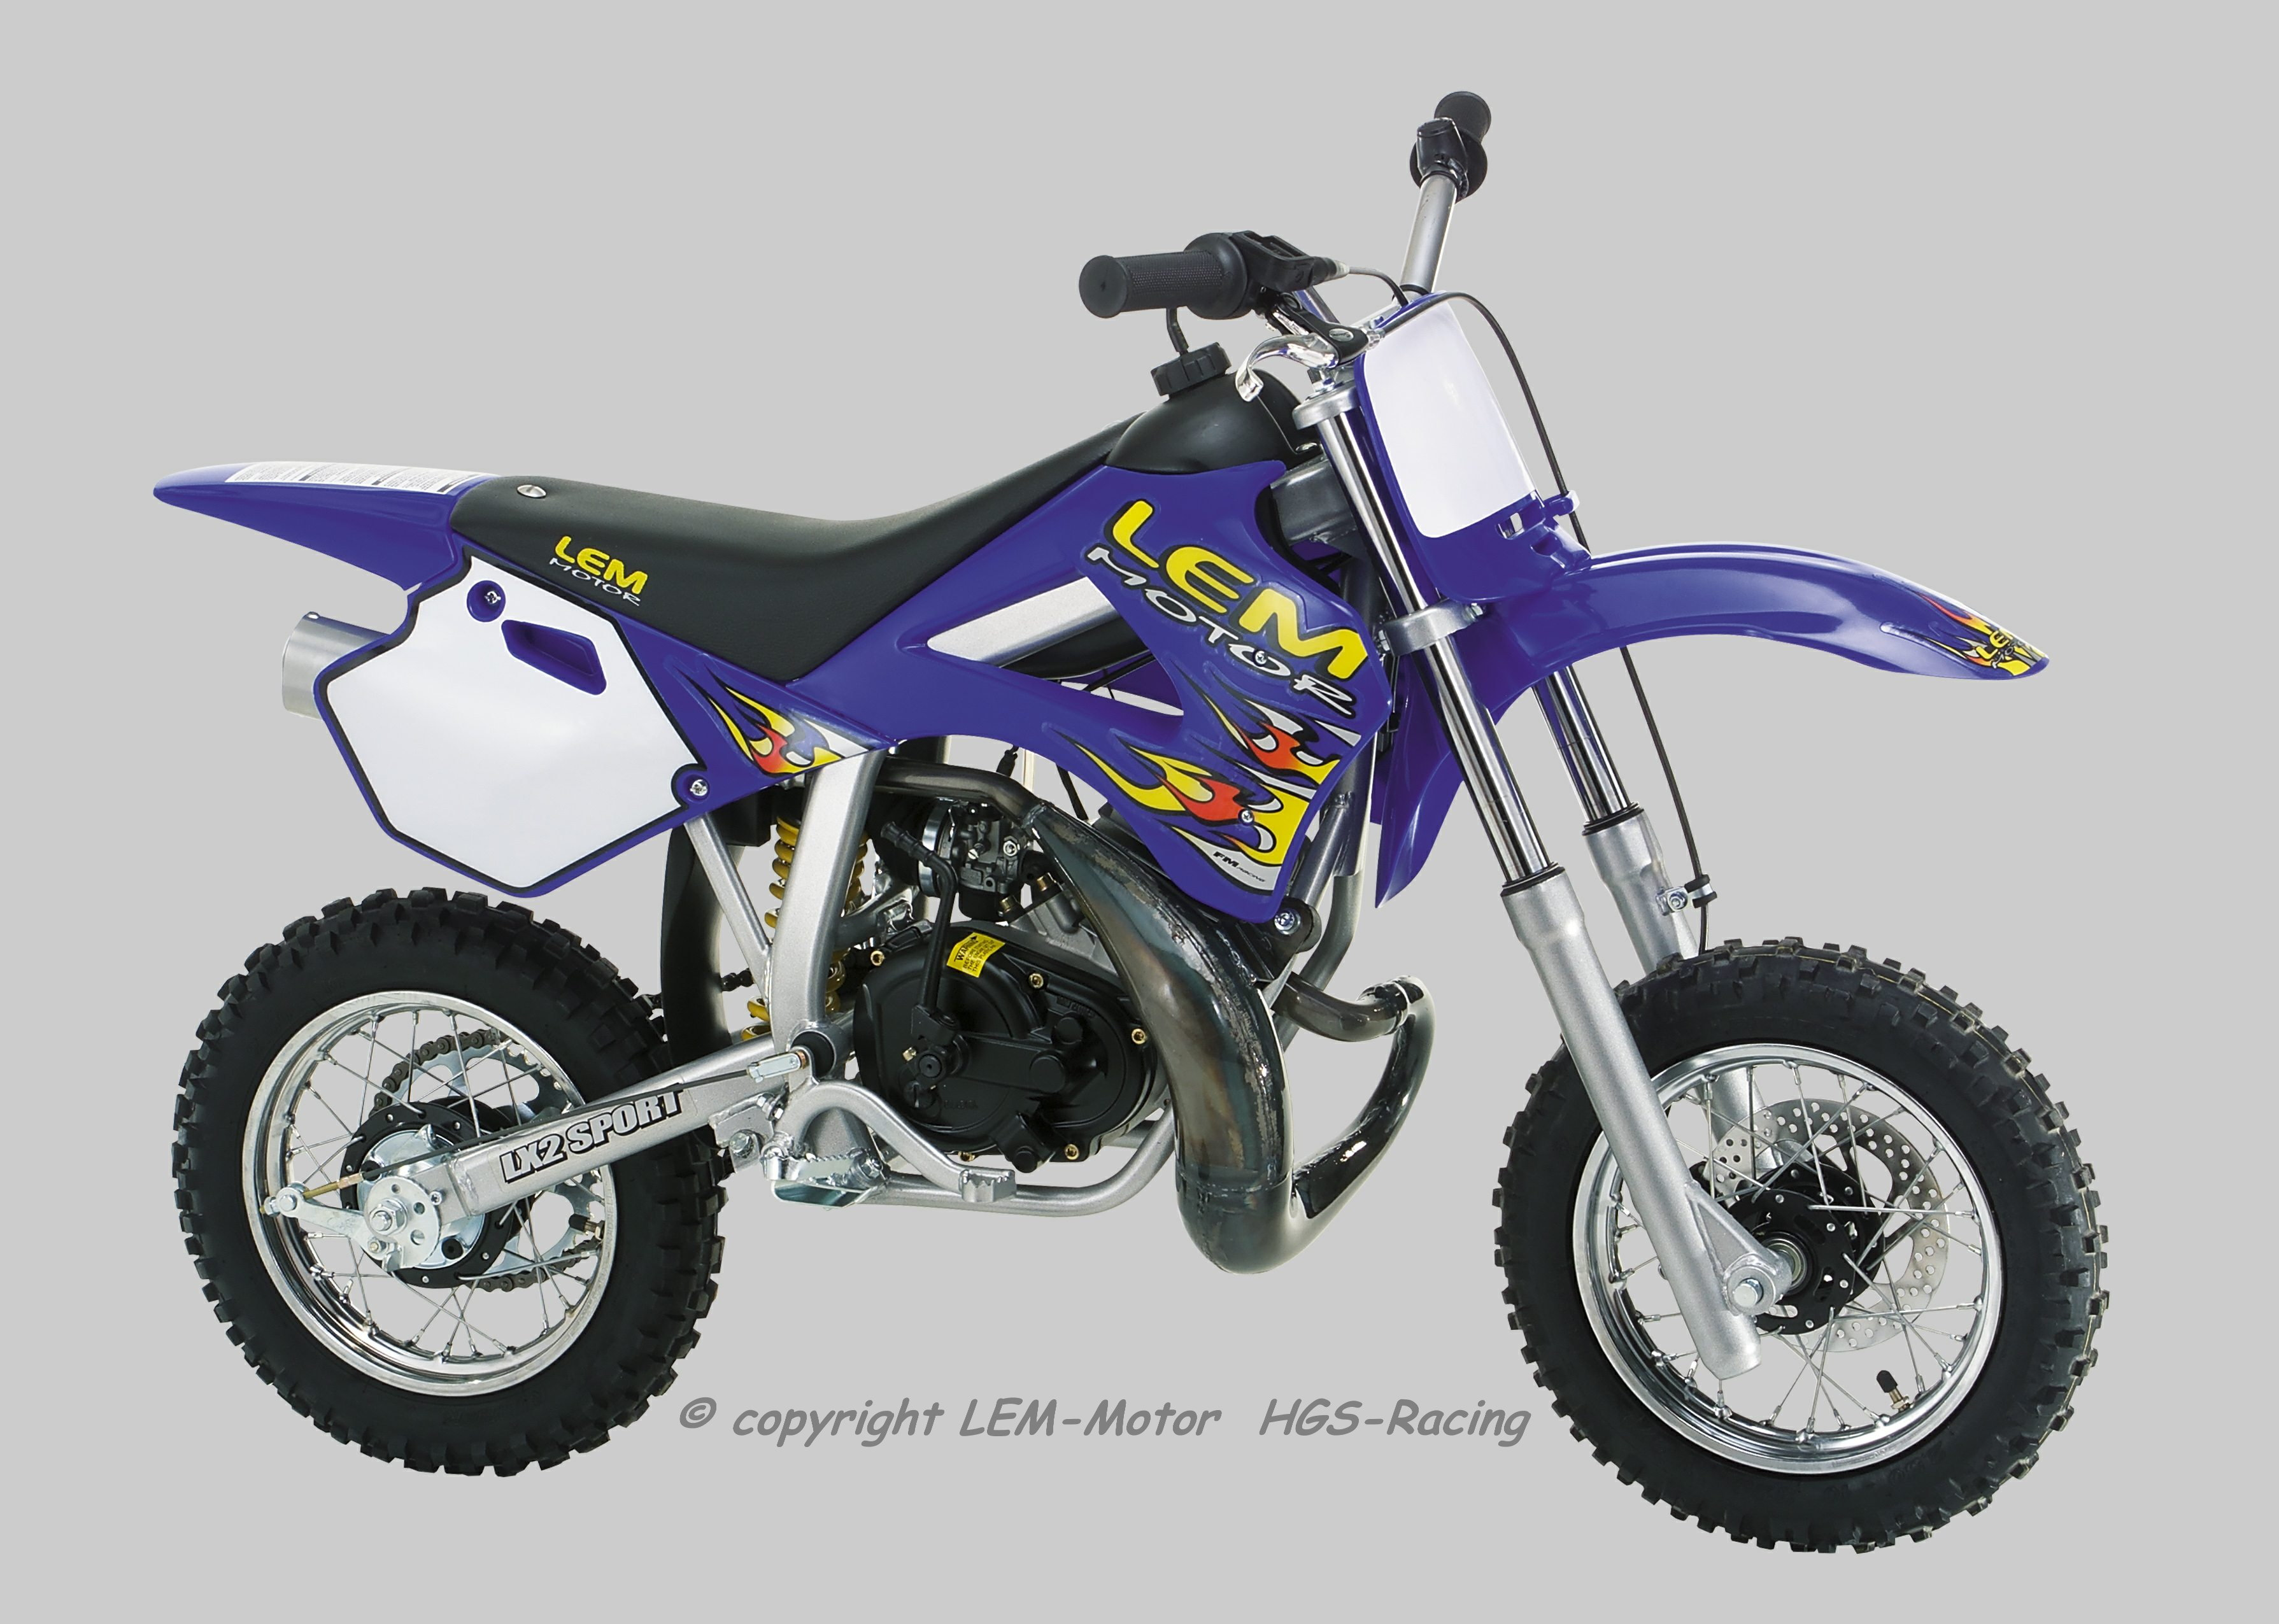 Lem LX 3 Factory Racing #3